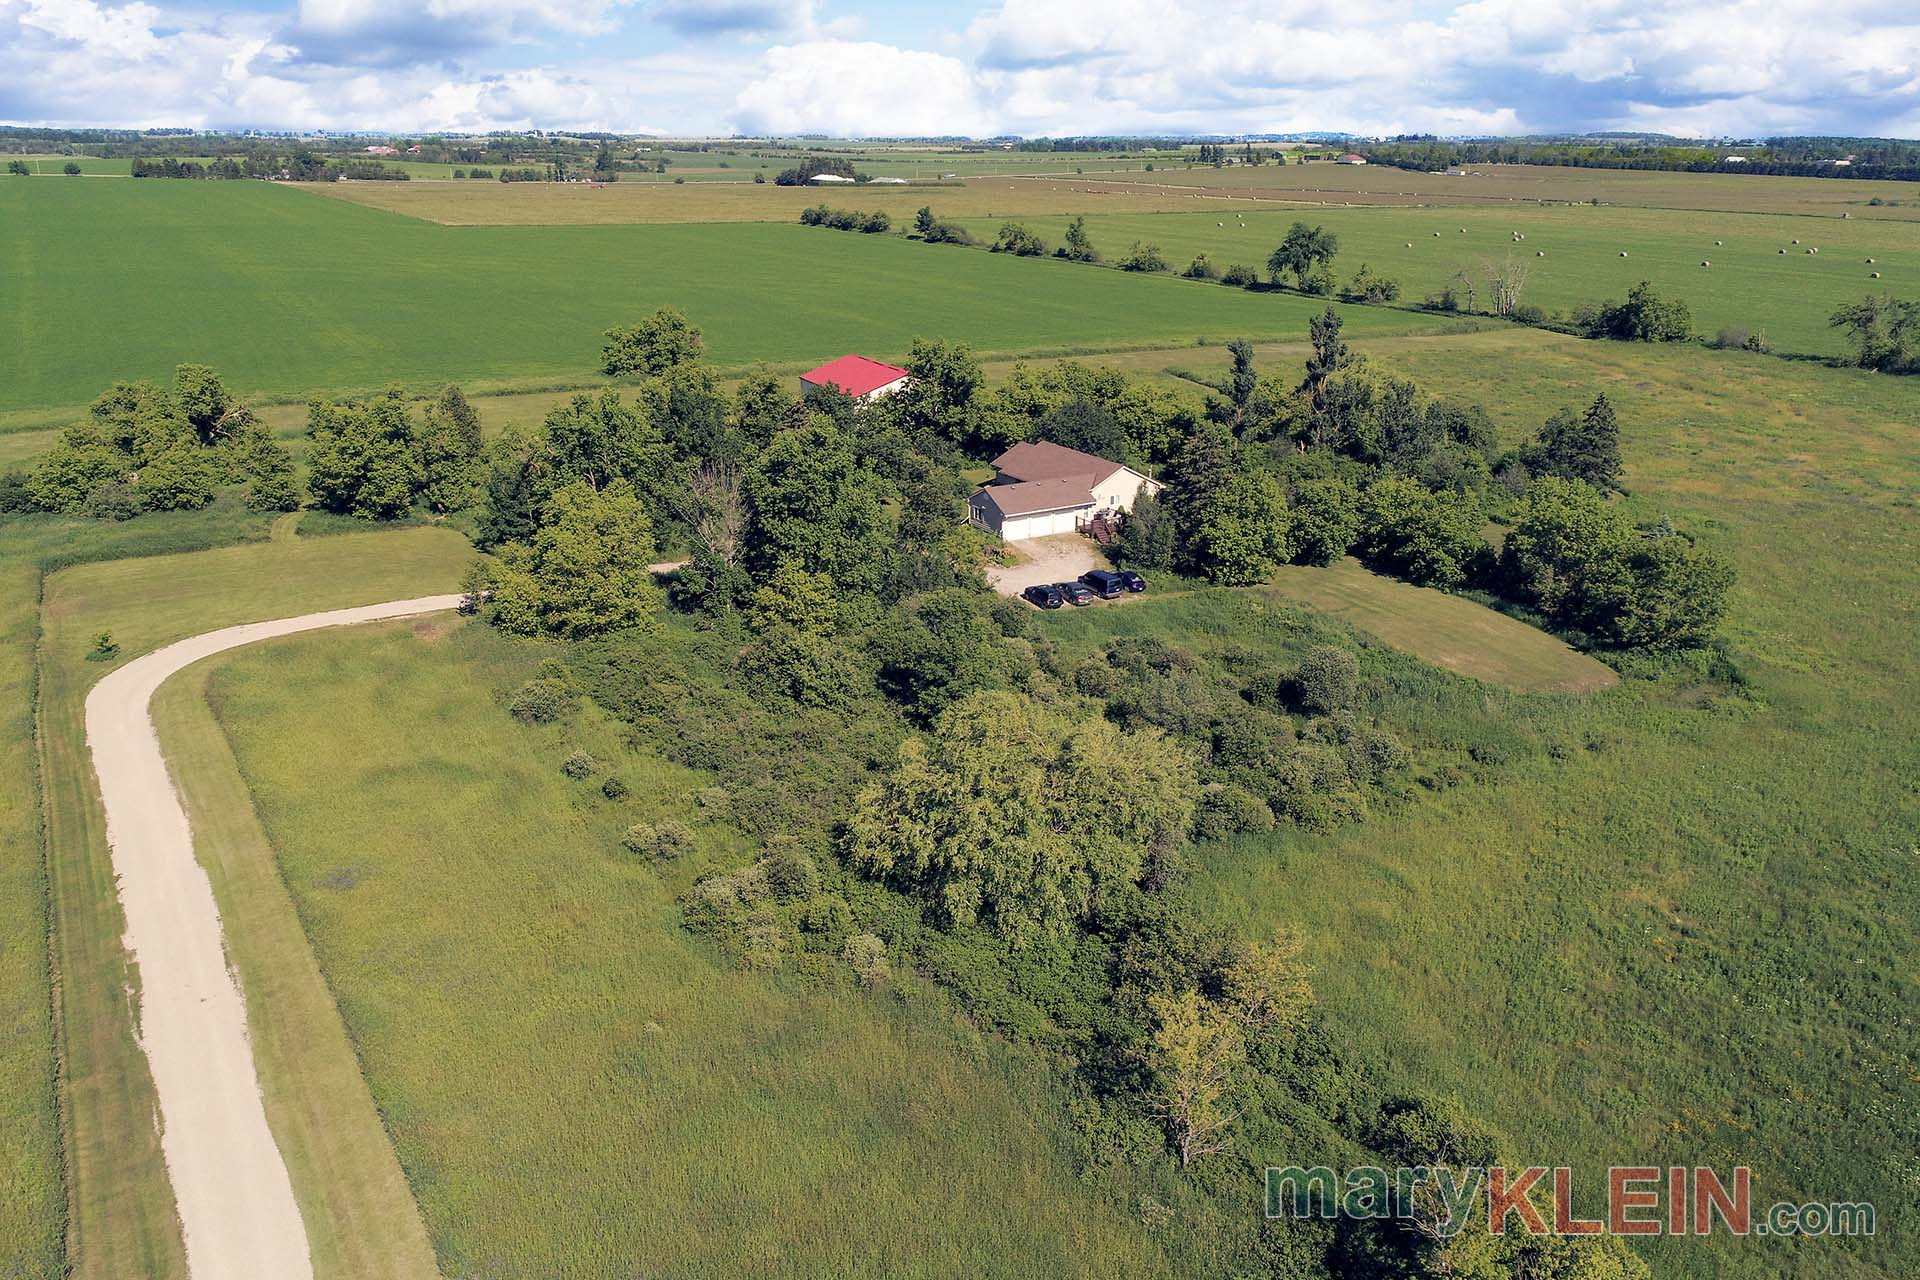 3-Bedroom Bungalow on 39 Acres, For Sale, Outside of Orangeville